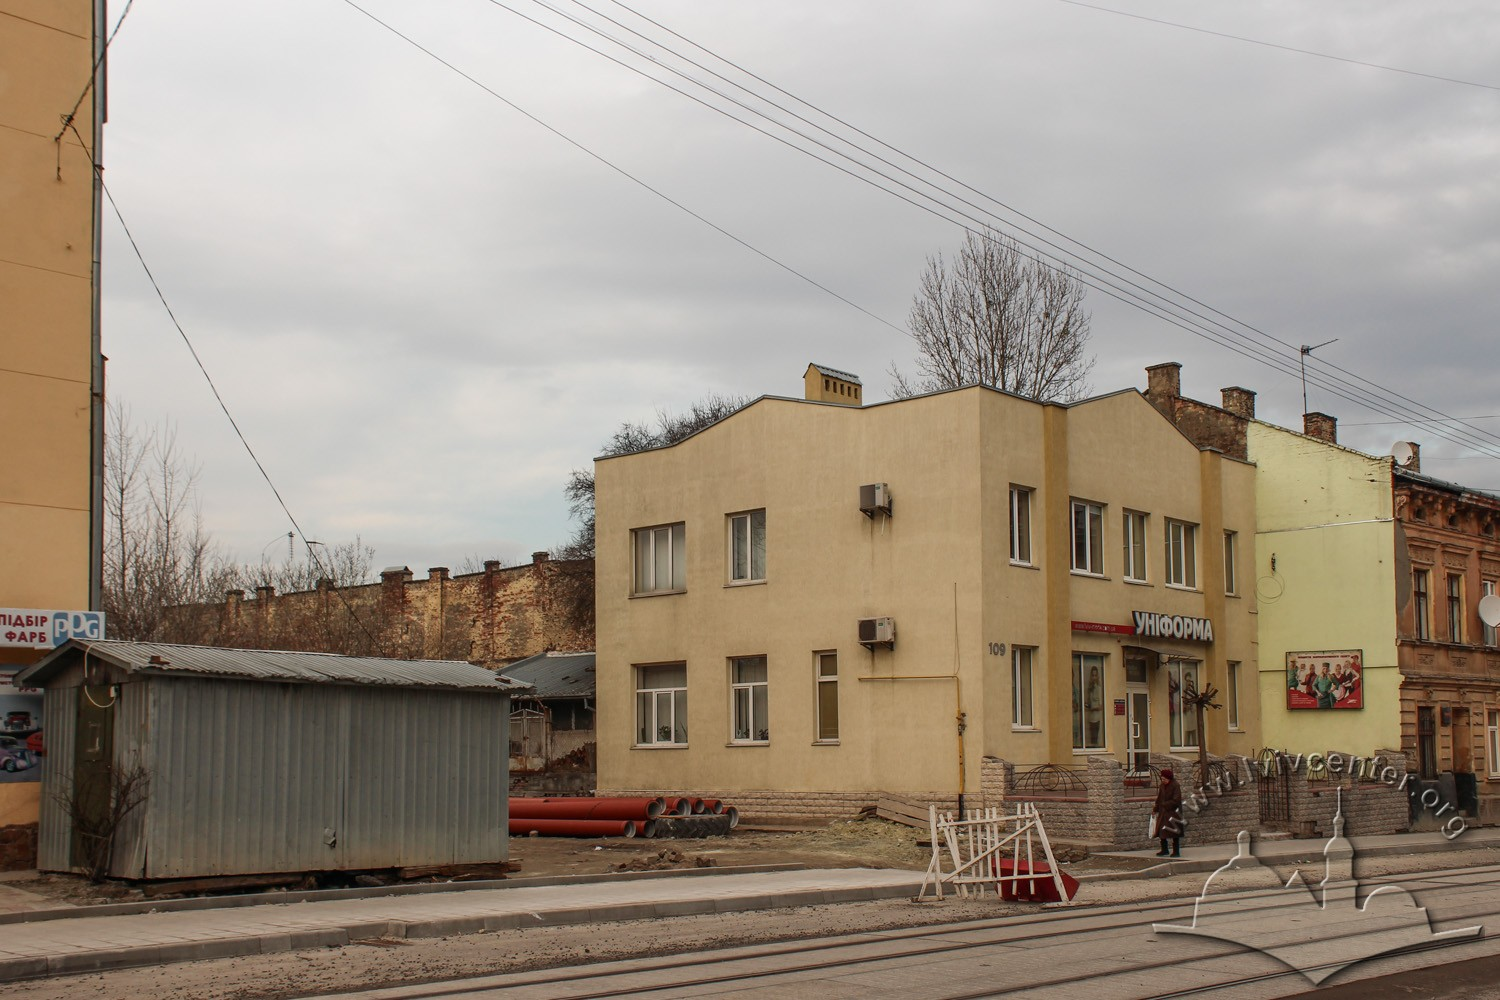 Contemporary building on vul. Khmelnytskoho, 109. Koryte Schul synagogue used to stand here/Photo courtesy of Olha Zarechnyuk, 2016